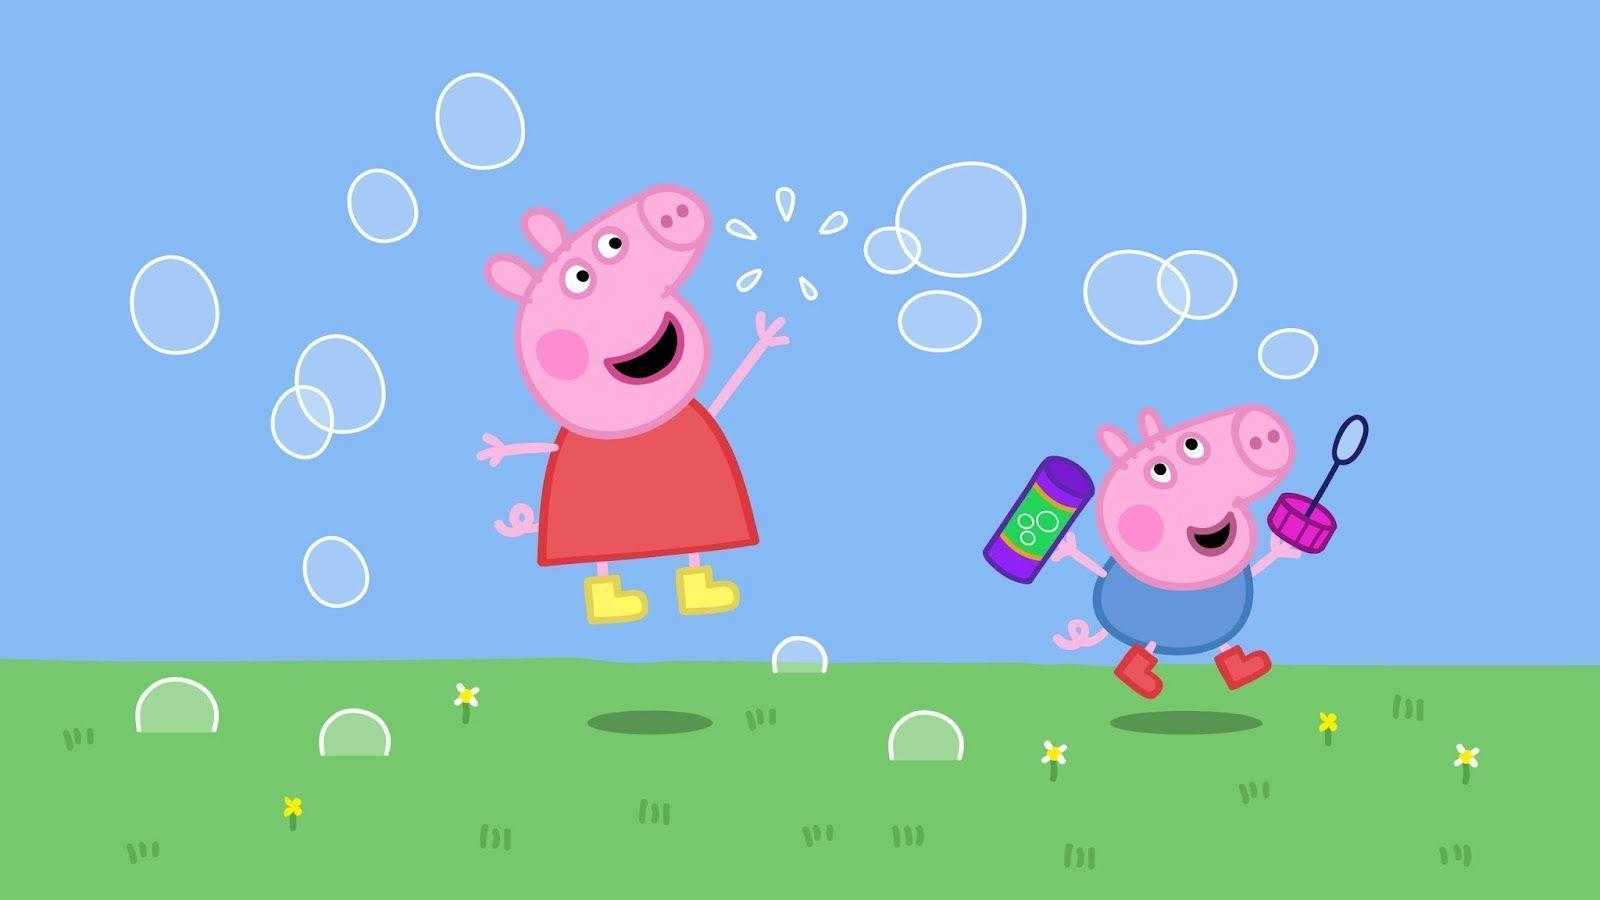 Peppa Pig House Wallpaper   NawPic